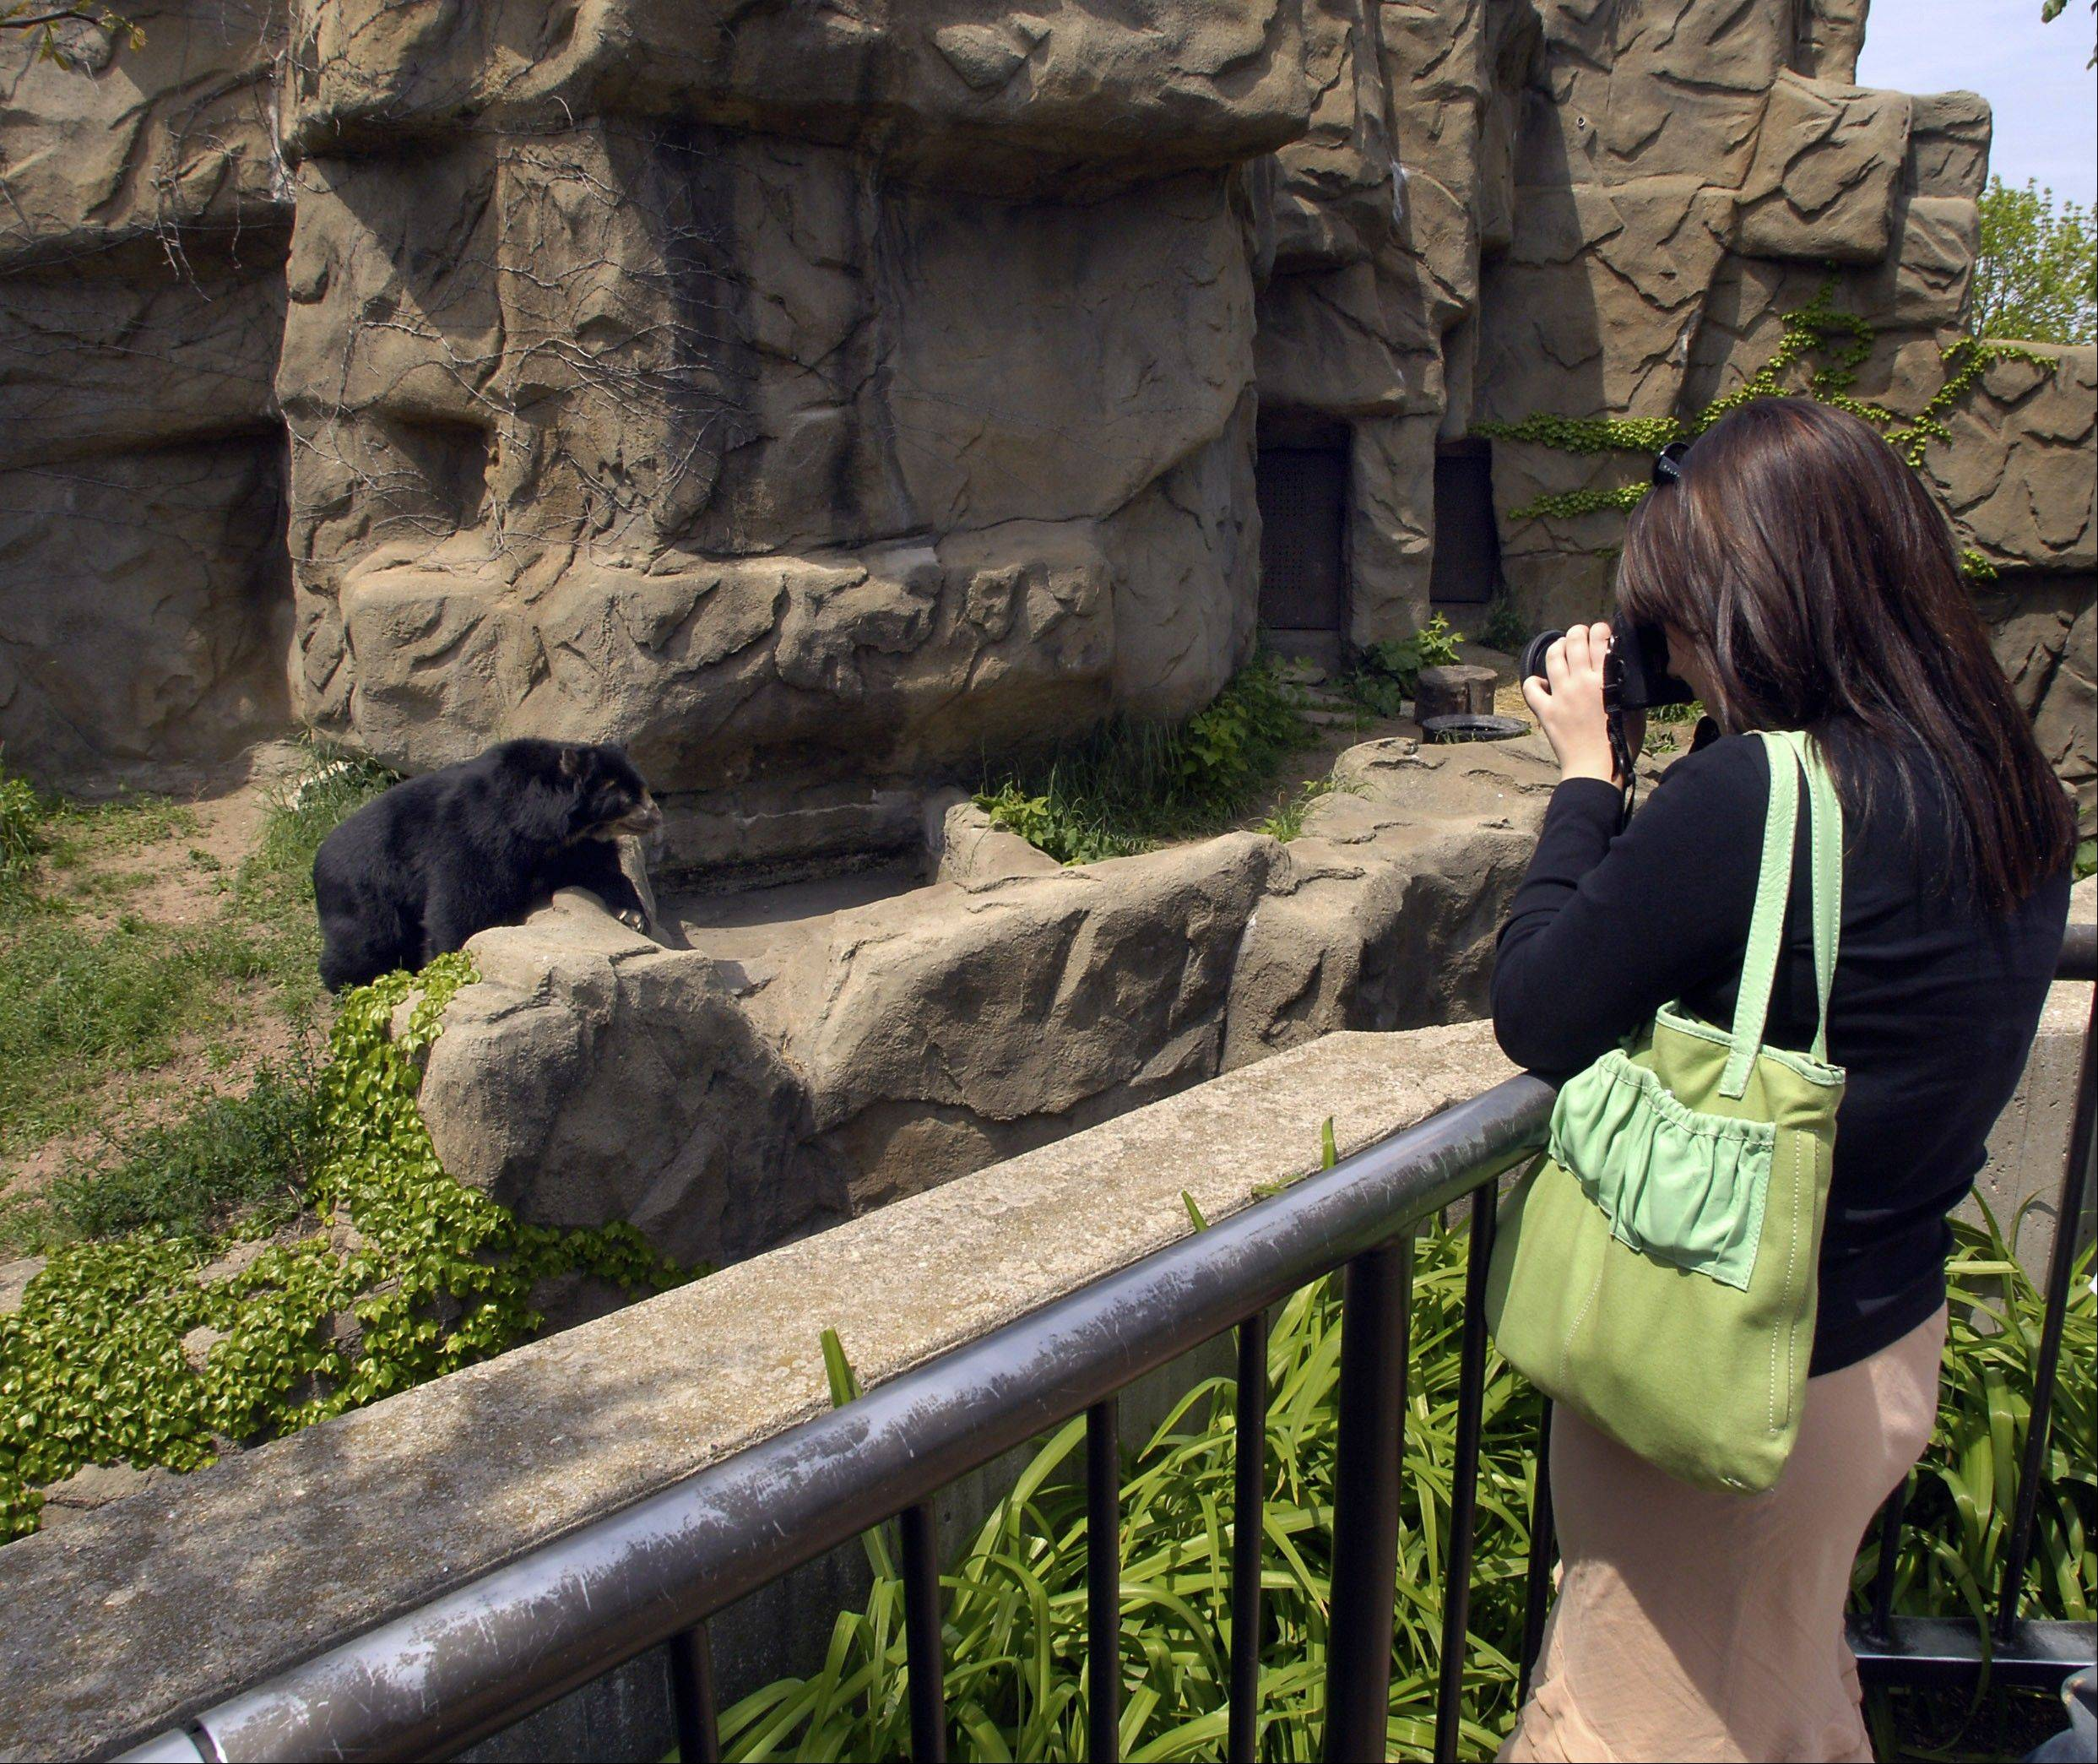 Lincoln Park Zoo in Chicago had 3.5 million visitors in 2012.